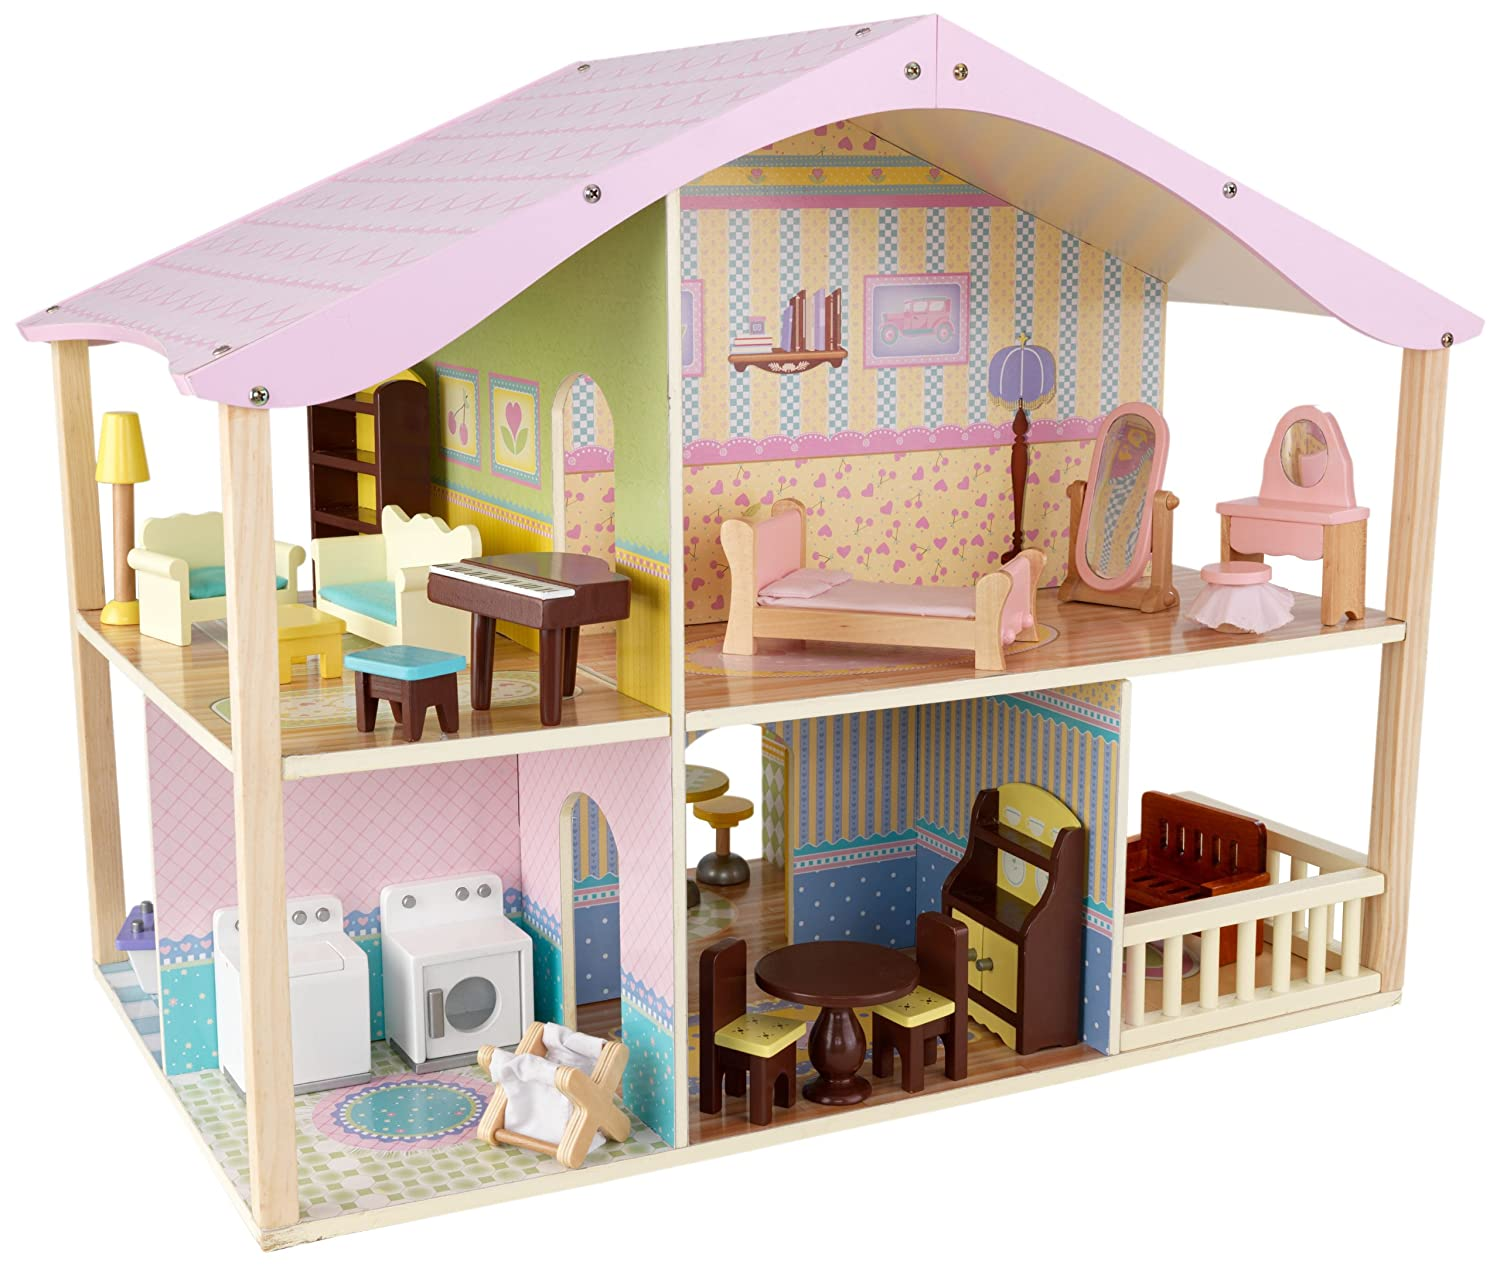 KidKraft Pastel Swivel Dollhouse For Toddlers